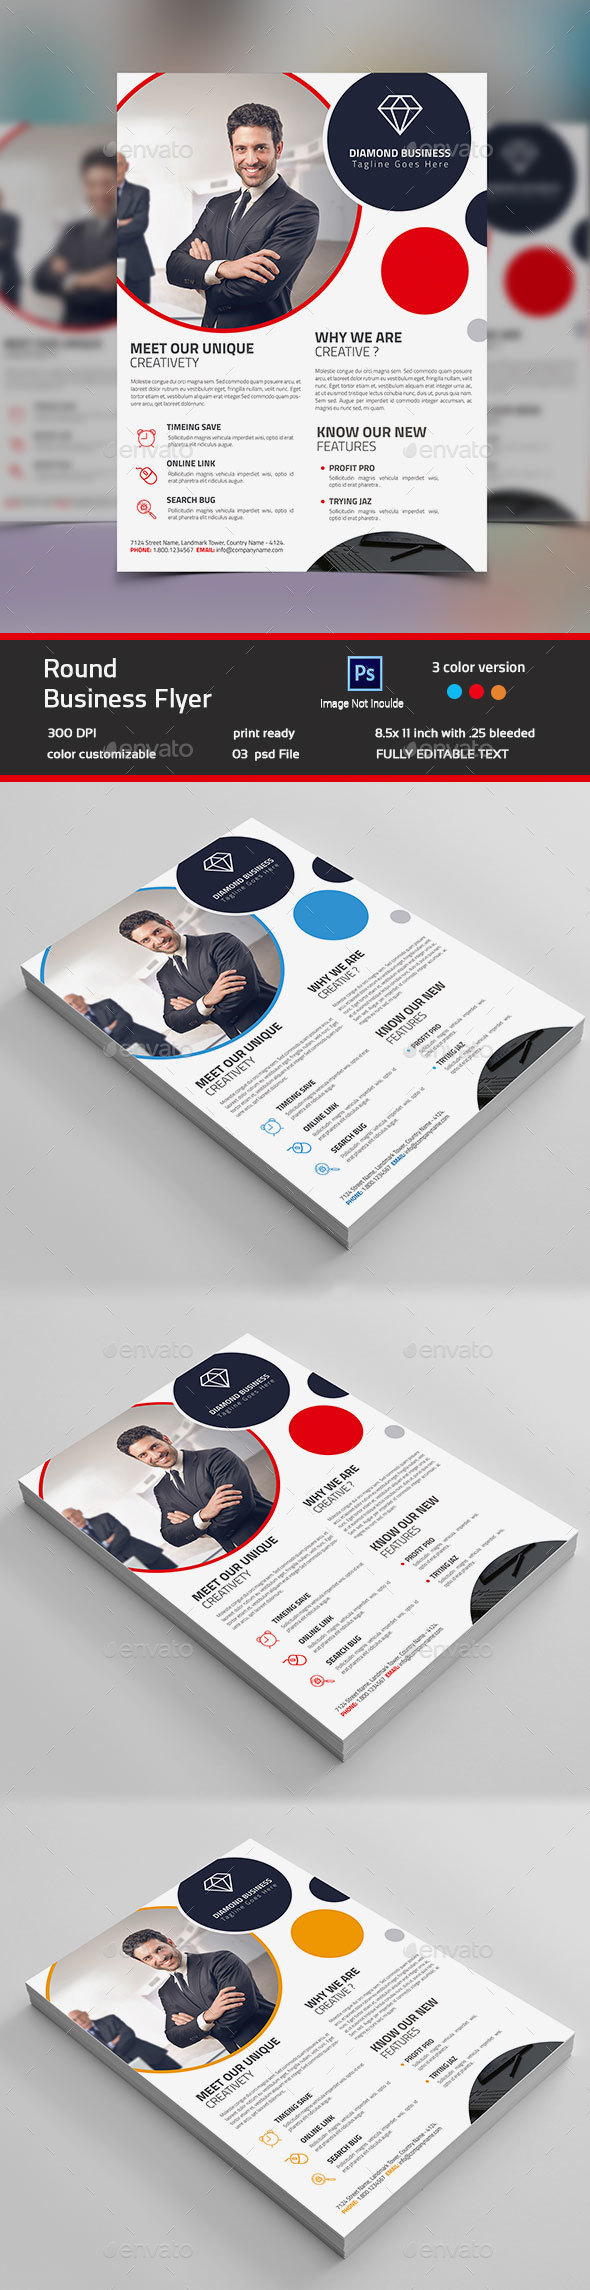 Round Business Flyer - Flyers Print Templates